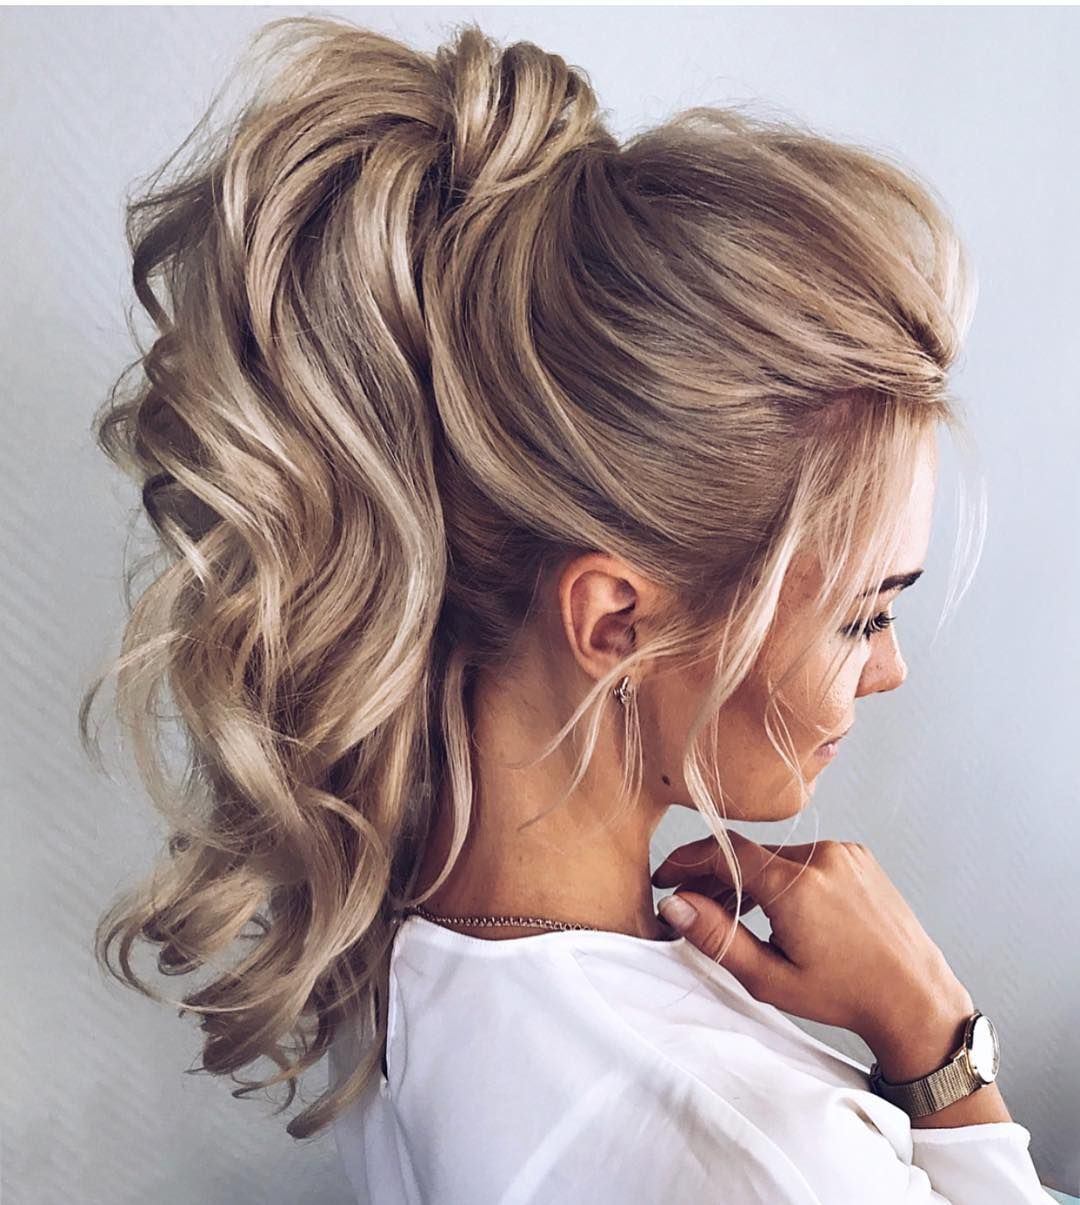 Wedding Hairstyle Ponytail: Updo Hairstyle , Wedding Hair ,updo, Hairstyles #messyupdo